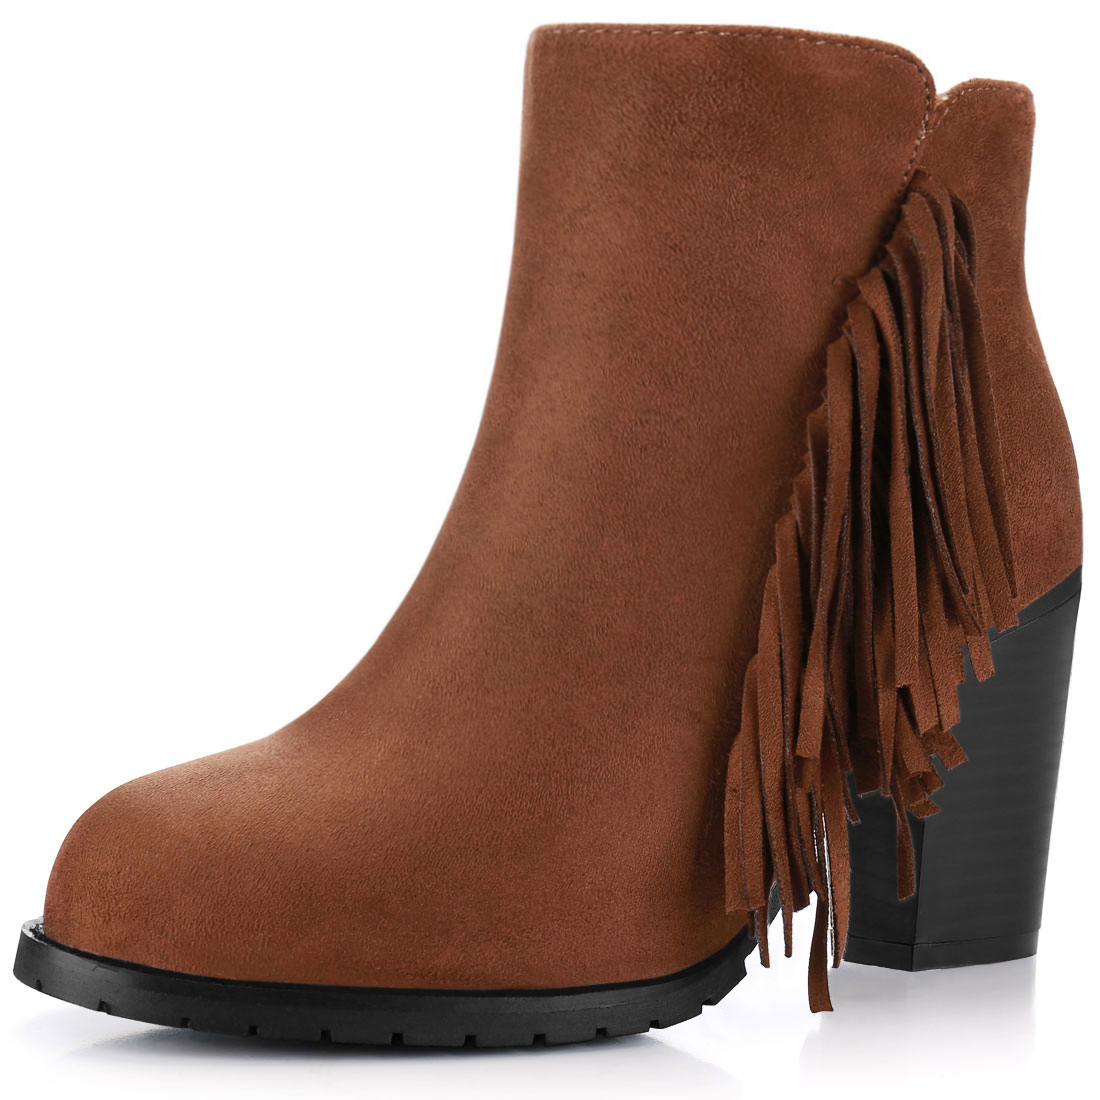 Women Fringe Trim Block High Heel Zip Side Ankle Boots Cognac US 7.5